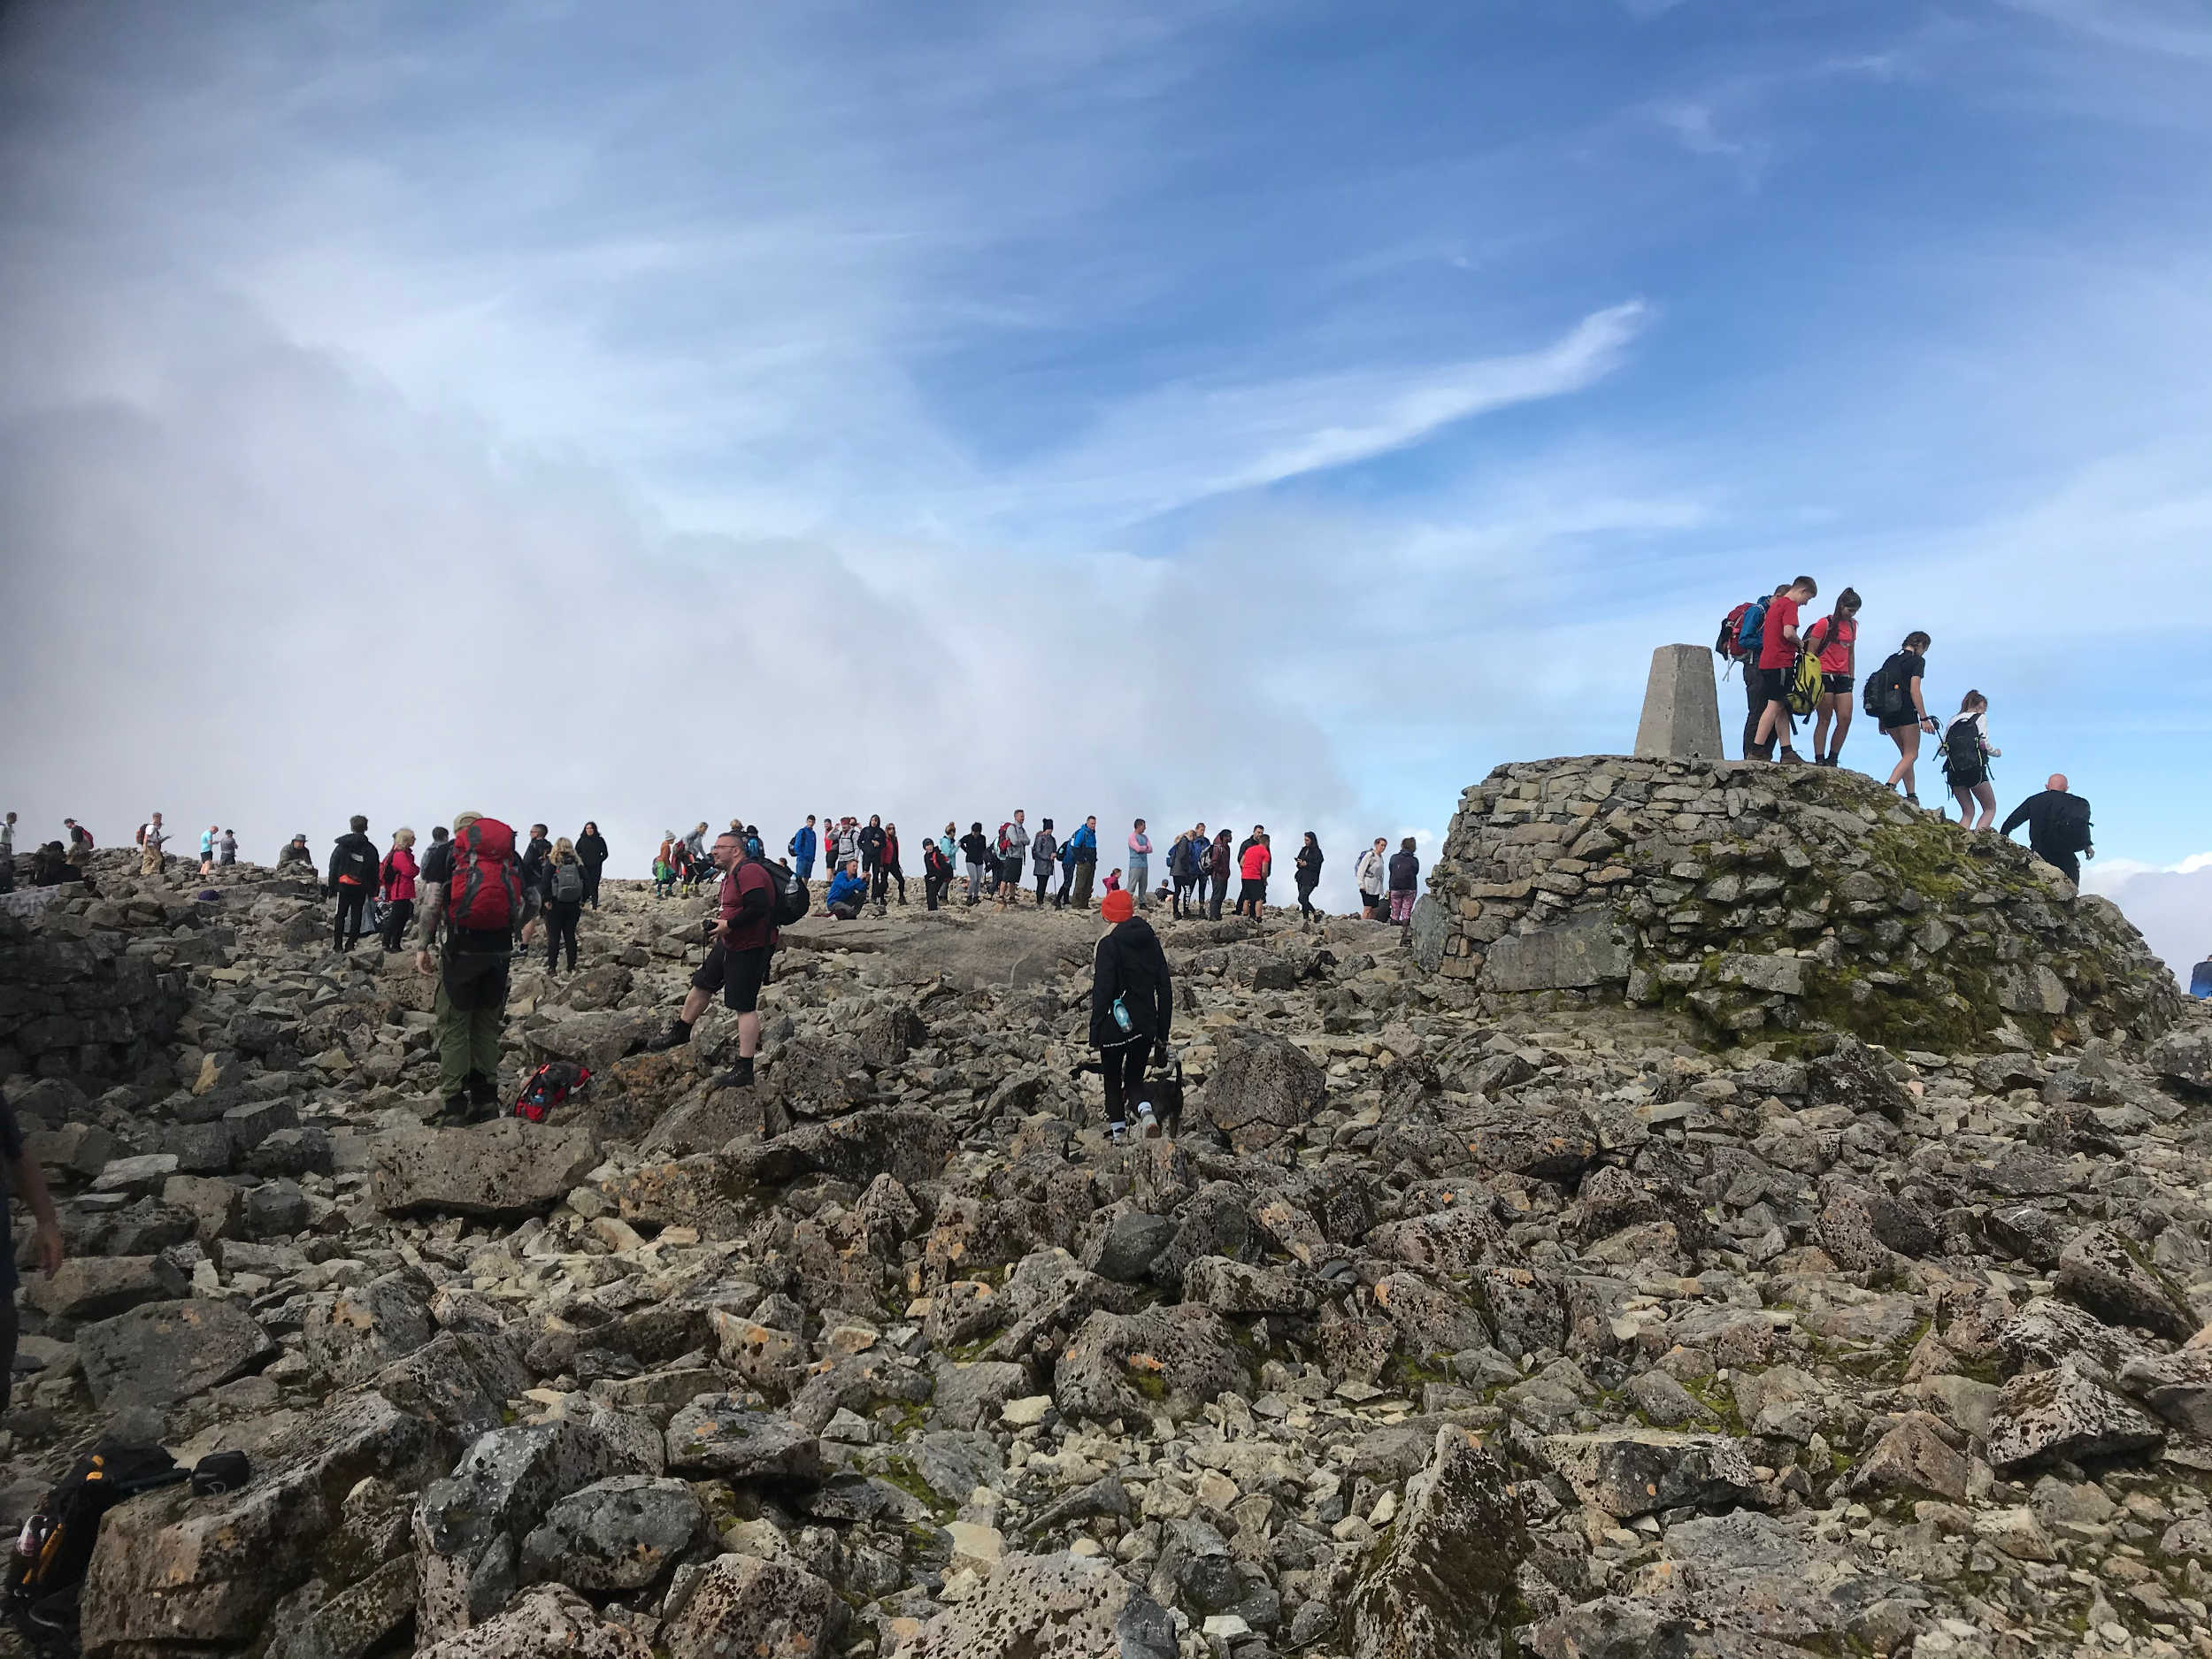 Further images show crowds gathering on Ben Nevis  By Deadline News,Scottish News